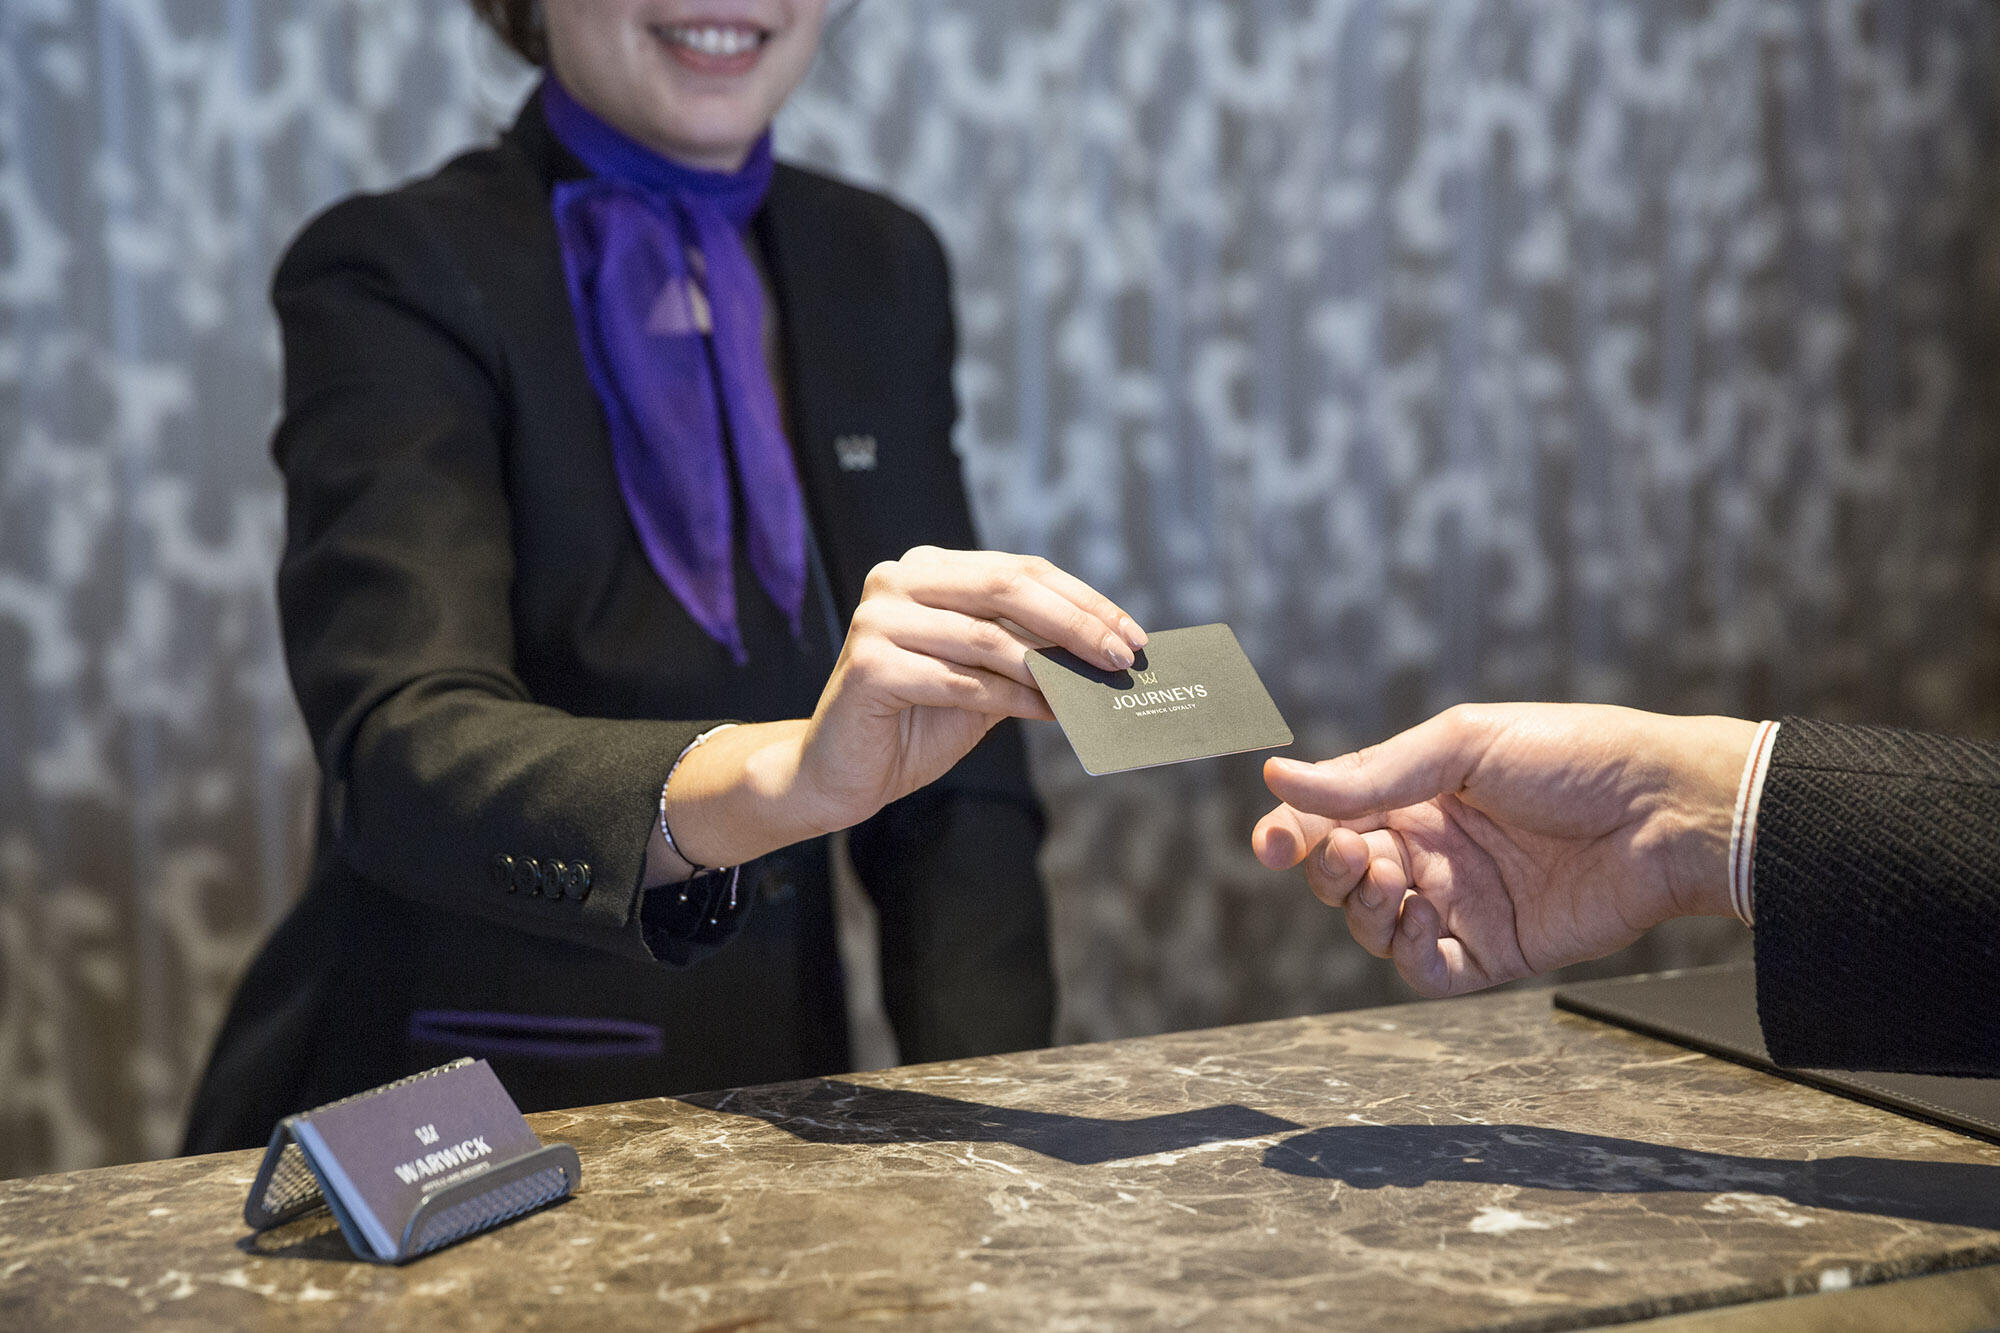 Guest Checking-in as a Warwick Journeys member